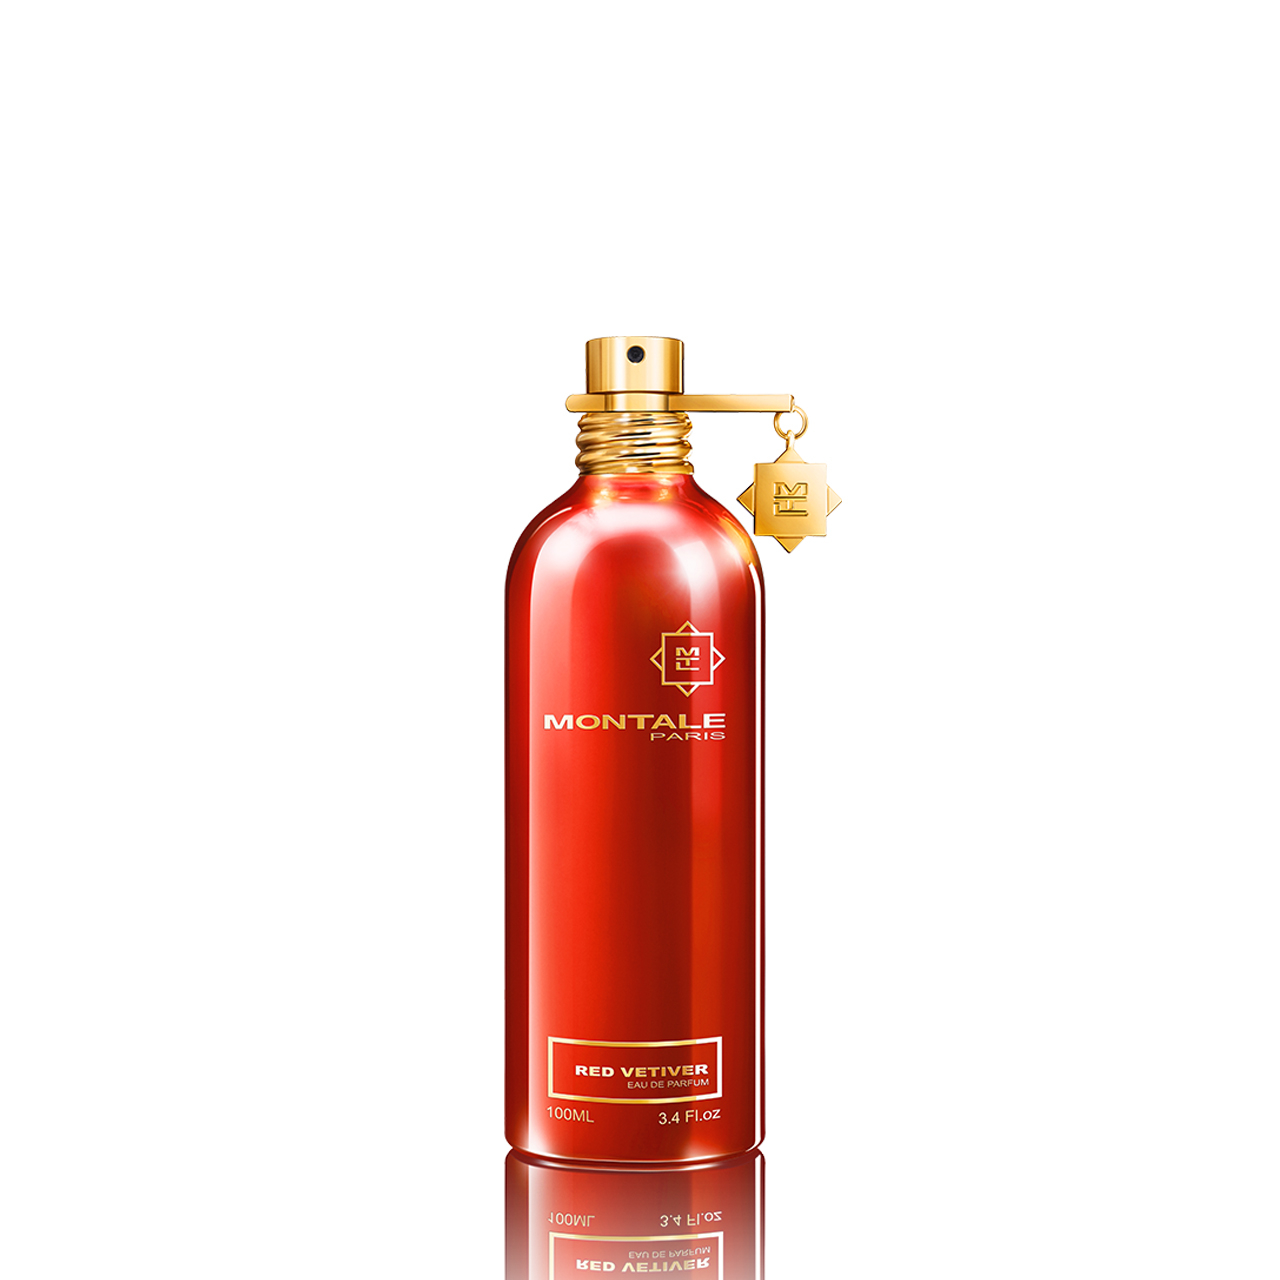 Red Vetiver - Eau de Parfum